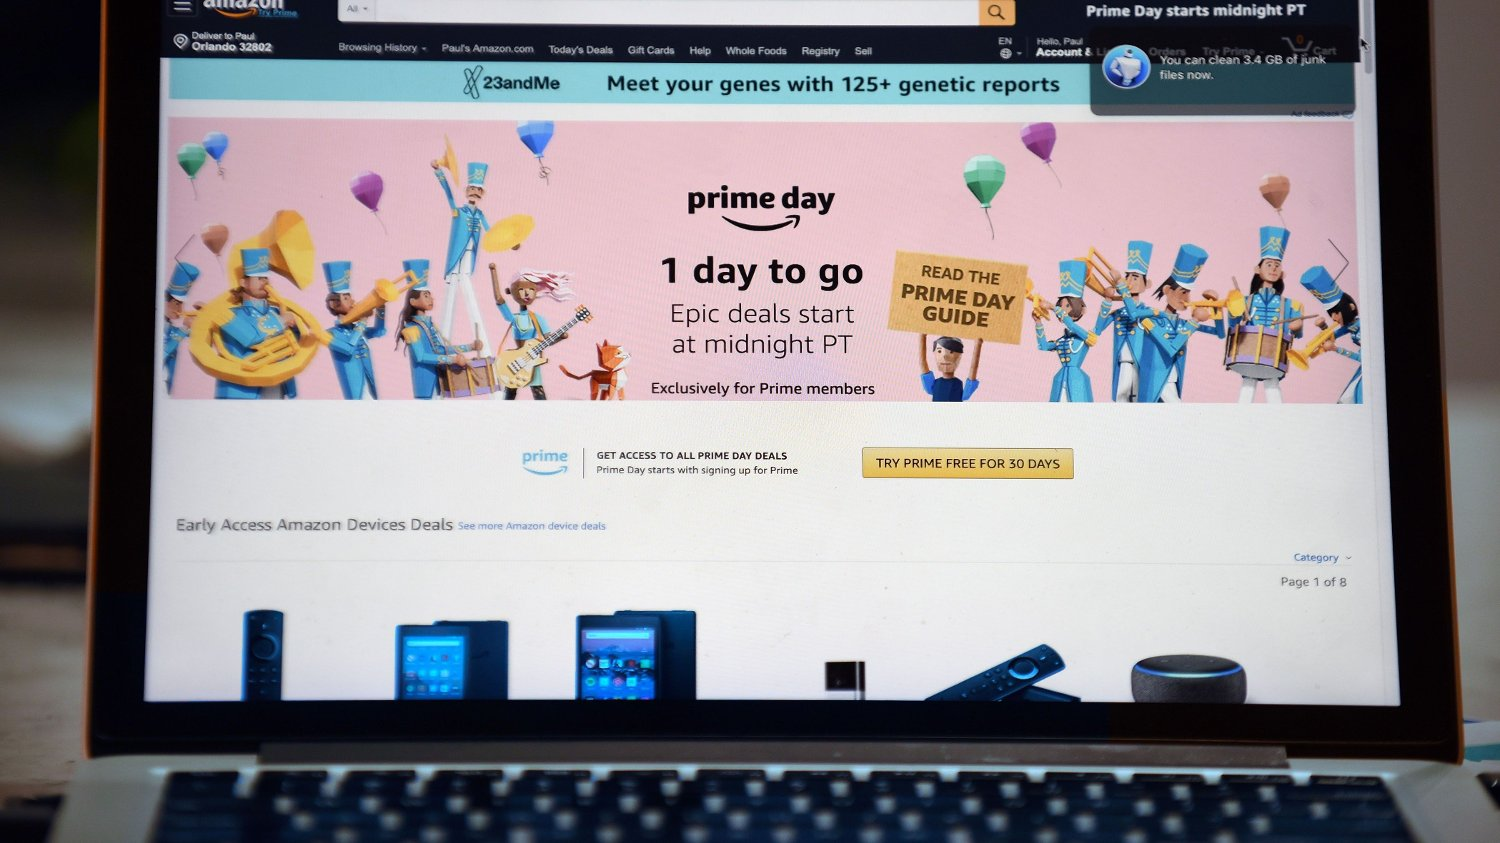 Amazon Prime Day The Amazon website is seen on a computer screen on July 14, 2019 in Orlando, Florida. On July 15 and 16, 2019, Amazon holds its annual Amazon Prime Day, a 48-hour event during which Prime members can shop online for hundreds of thousands of specially discounted items.